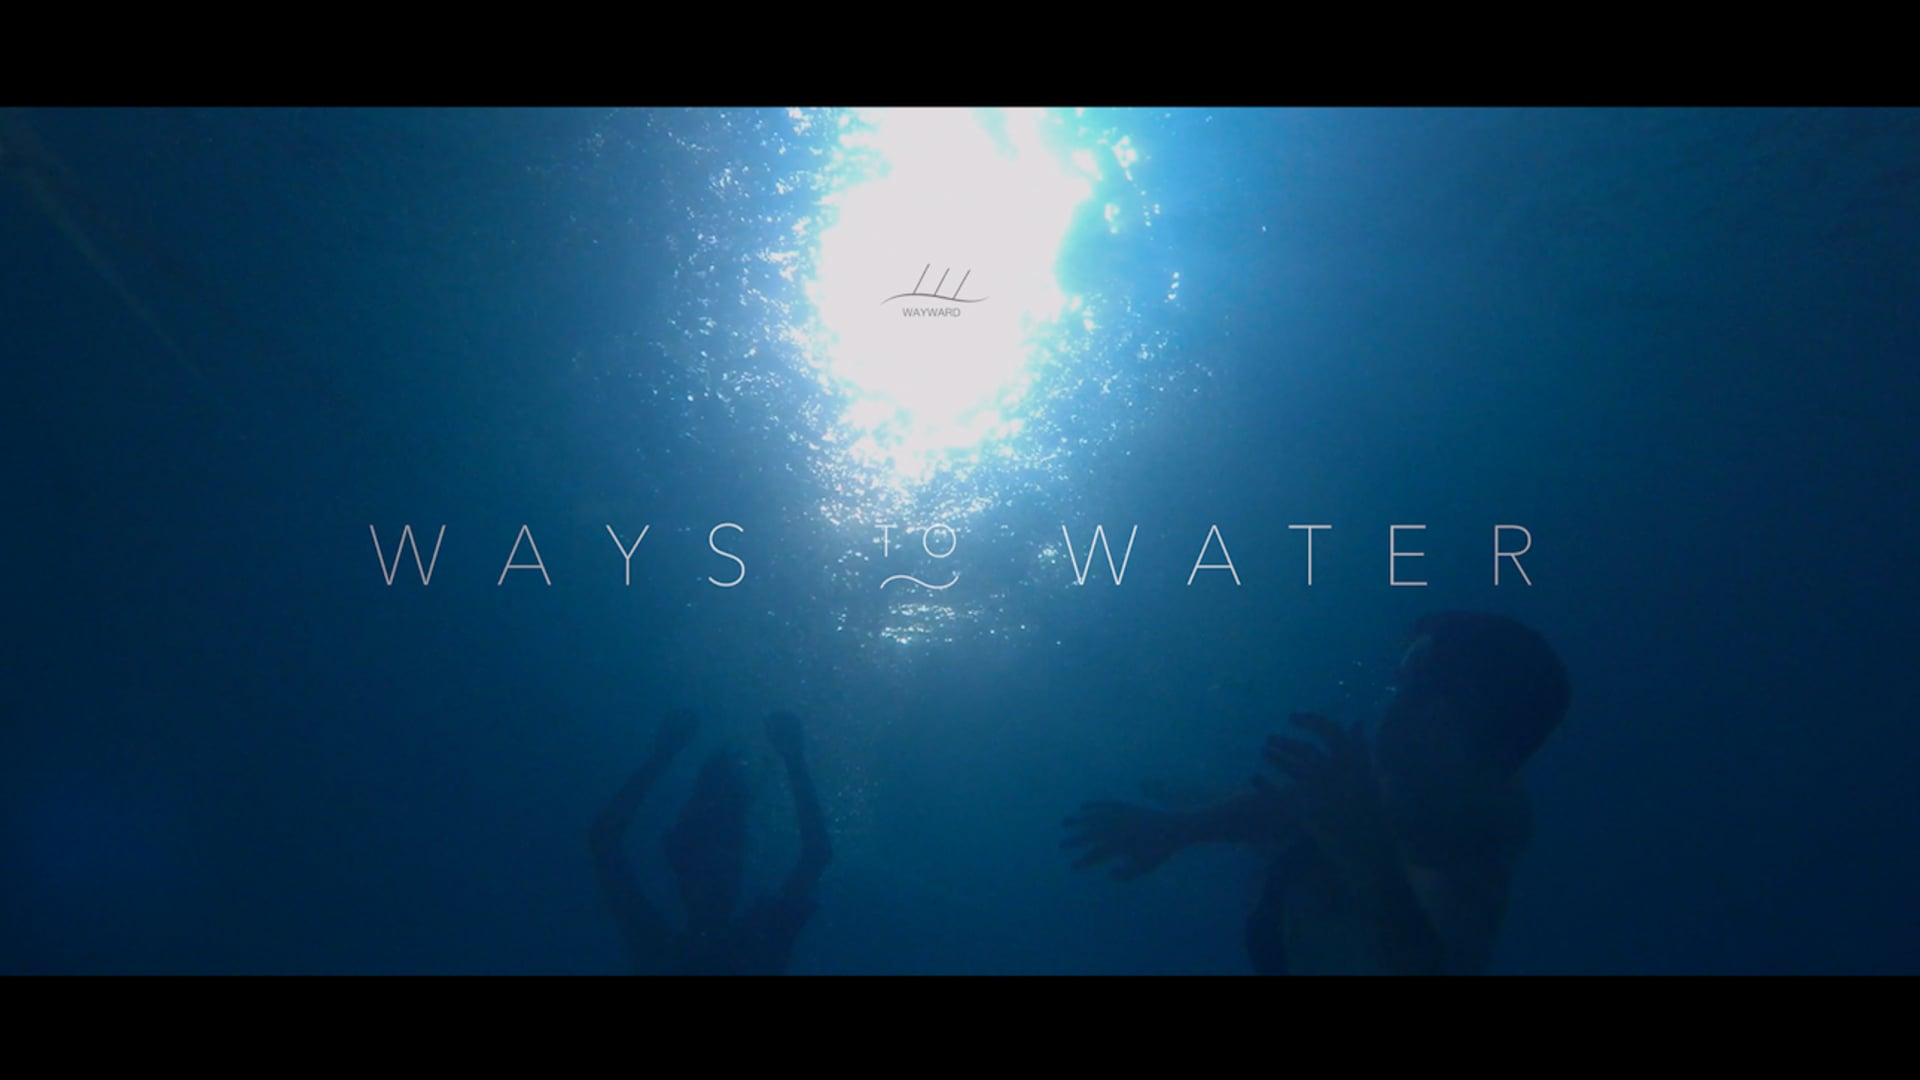 WAYS TO WATER - OFFICIAL TRAILER